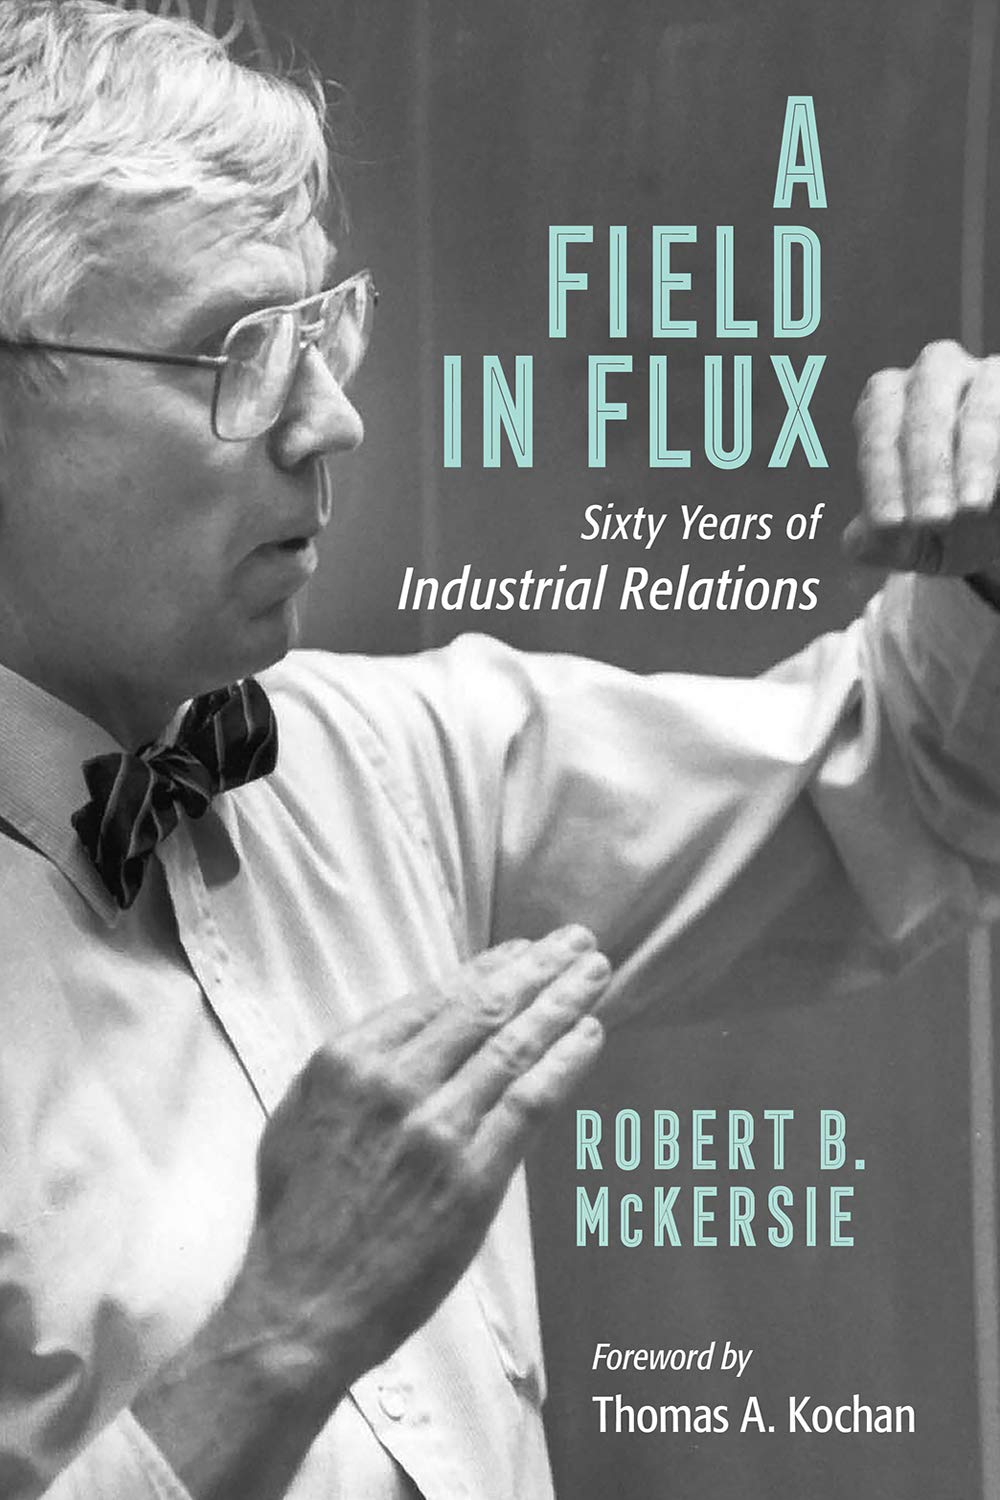 A Field in Flux: Sixty Years of Industrial Relations